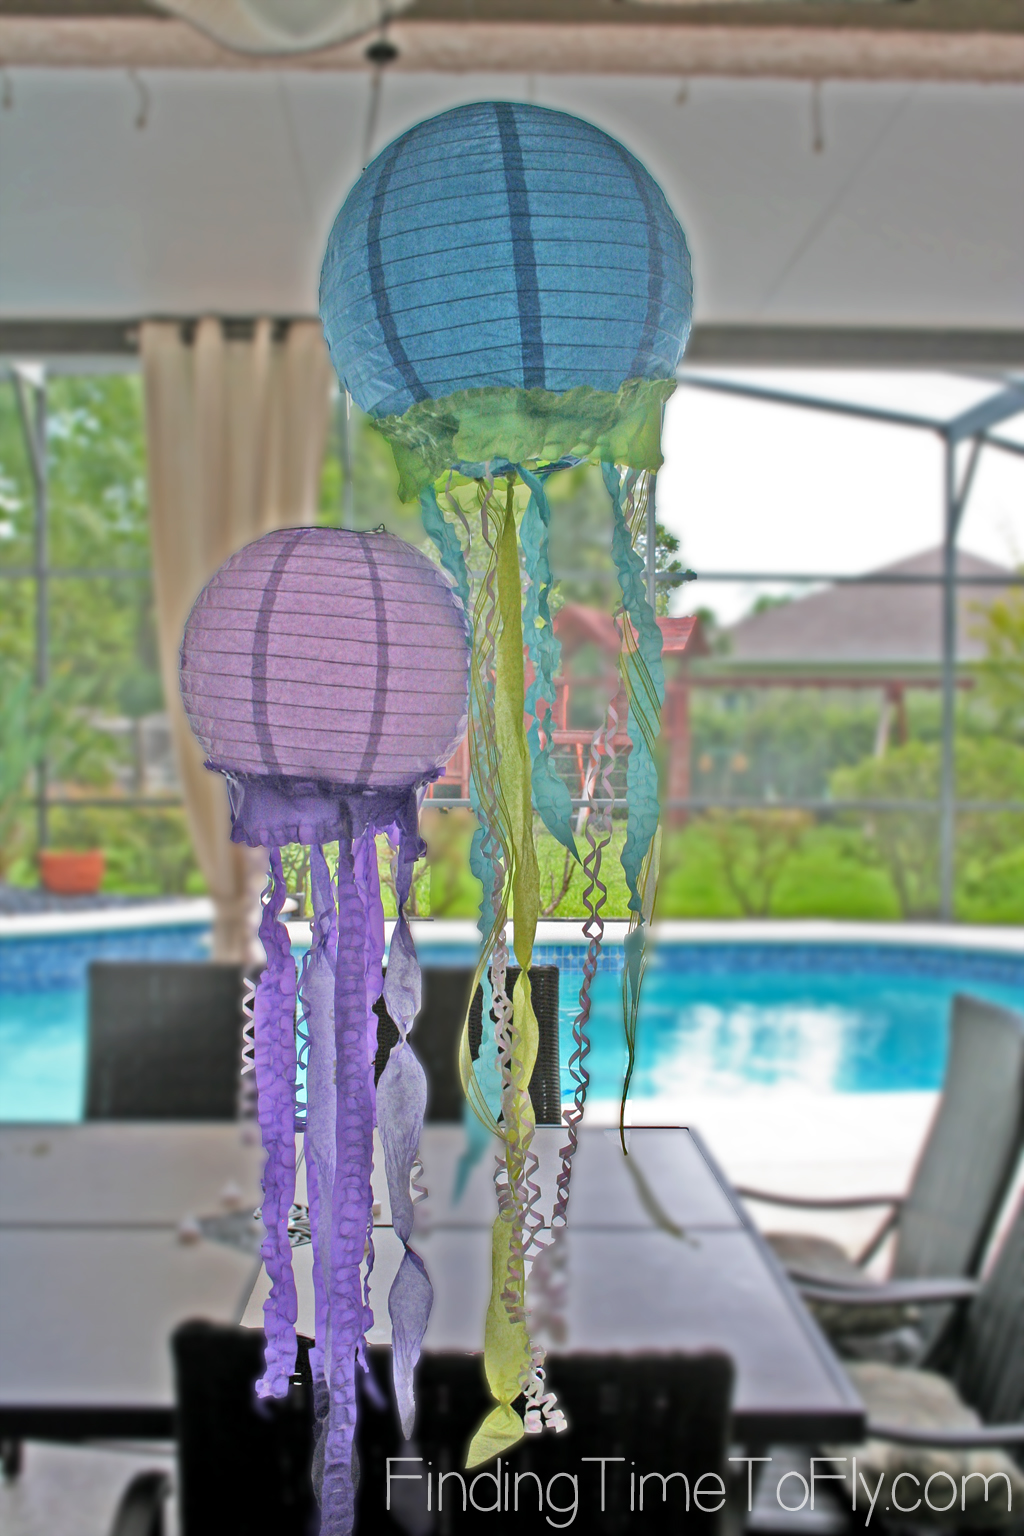 mermaid-under-the-sea-party-jellyfish-lanterns-outside